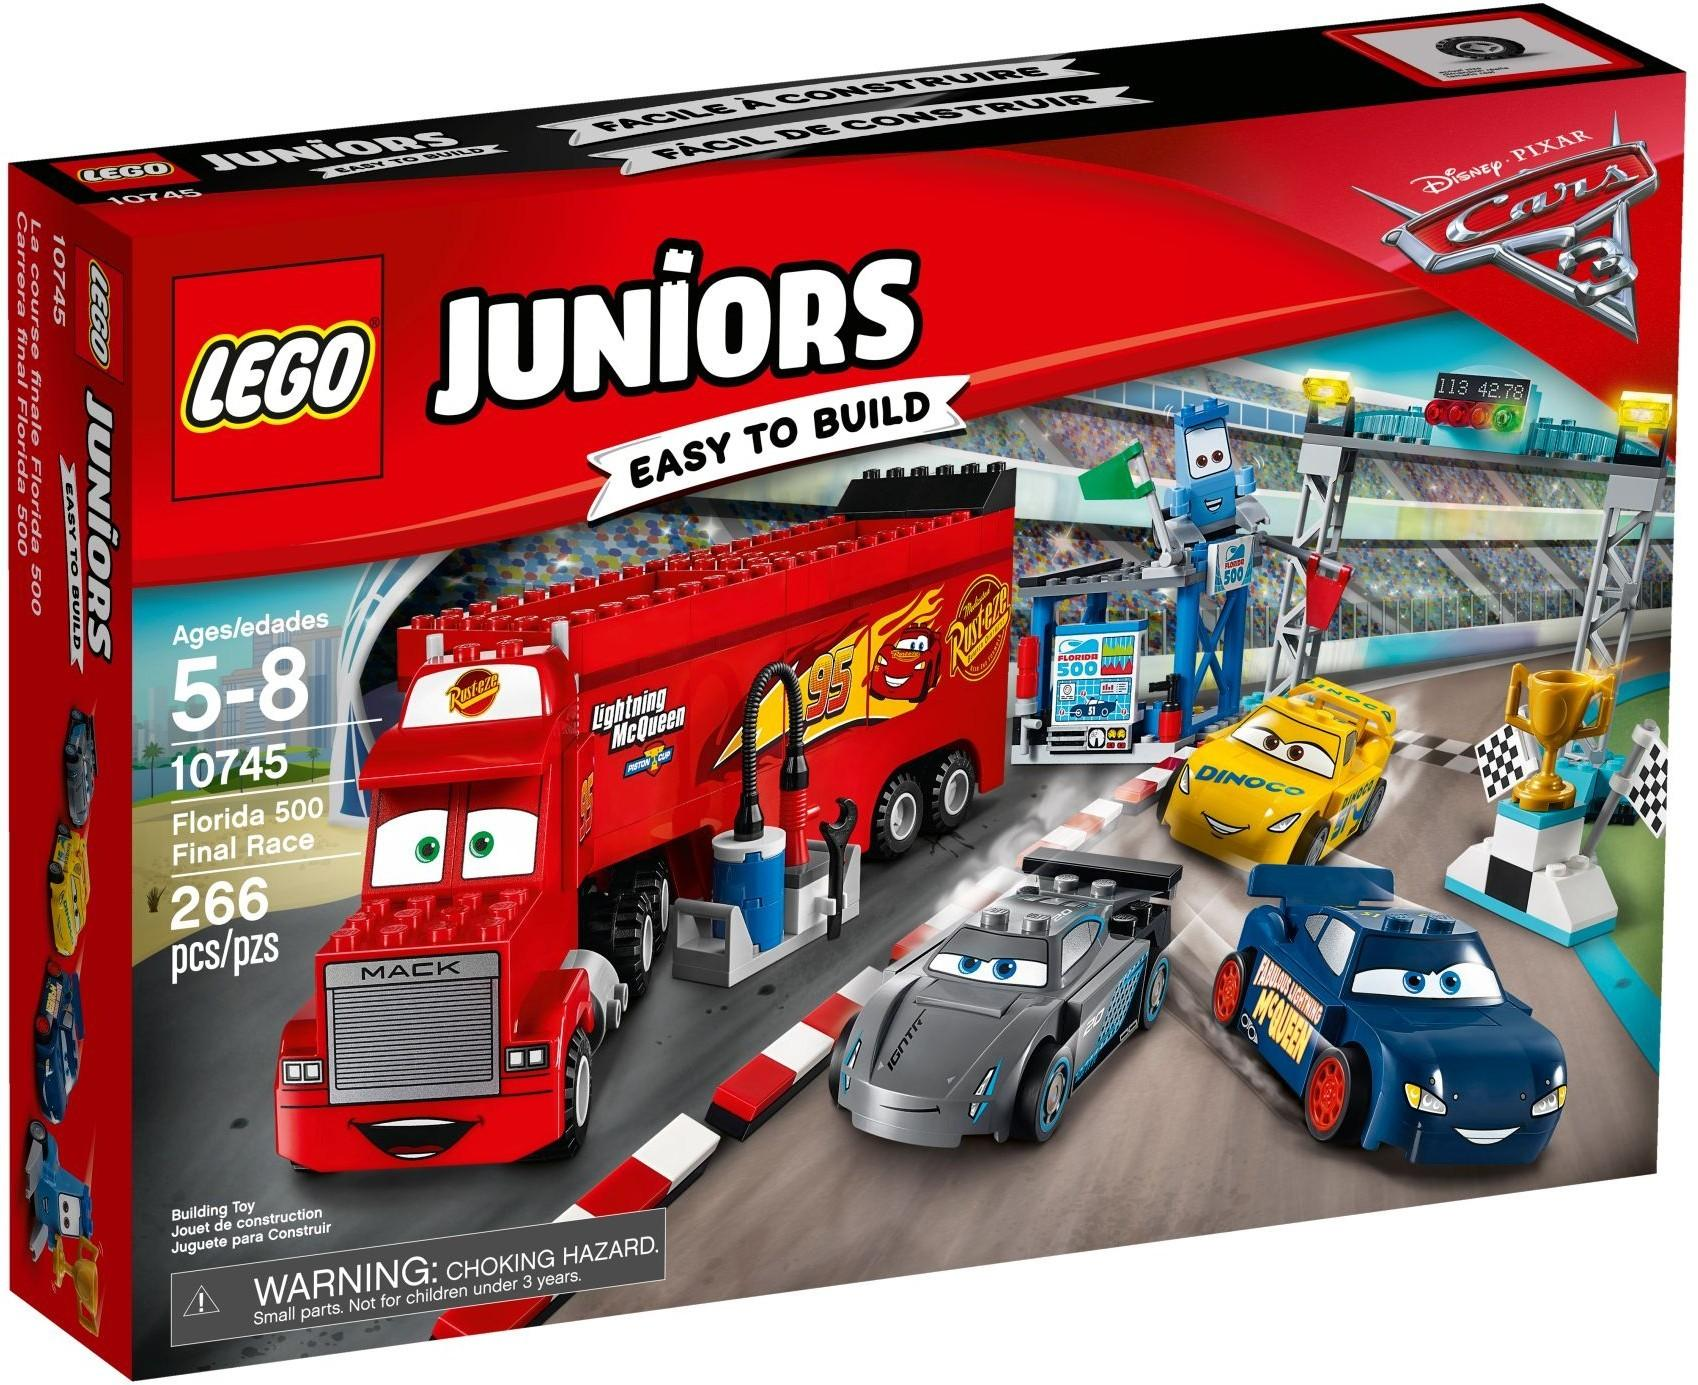 Lego Juniors Florida 500 Final Race